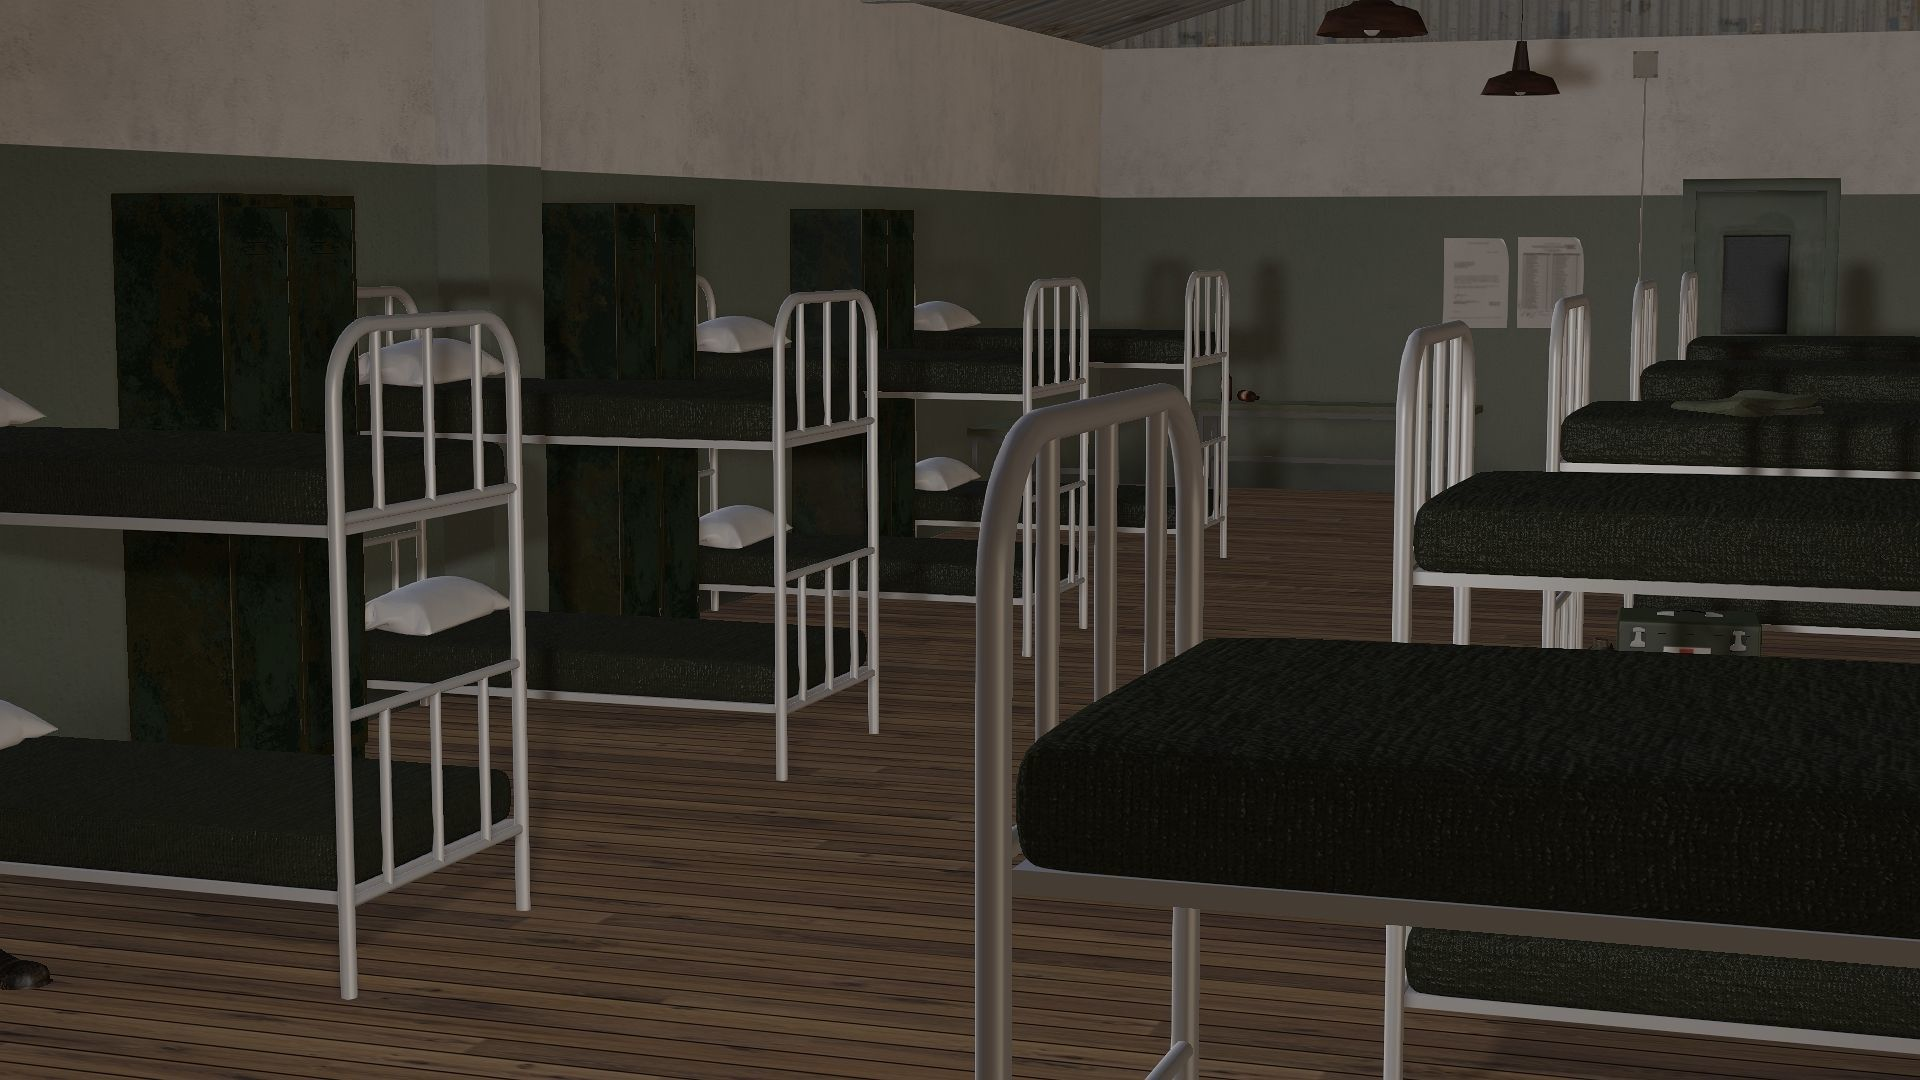 3D Model Army Military Barracks room | 3D model